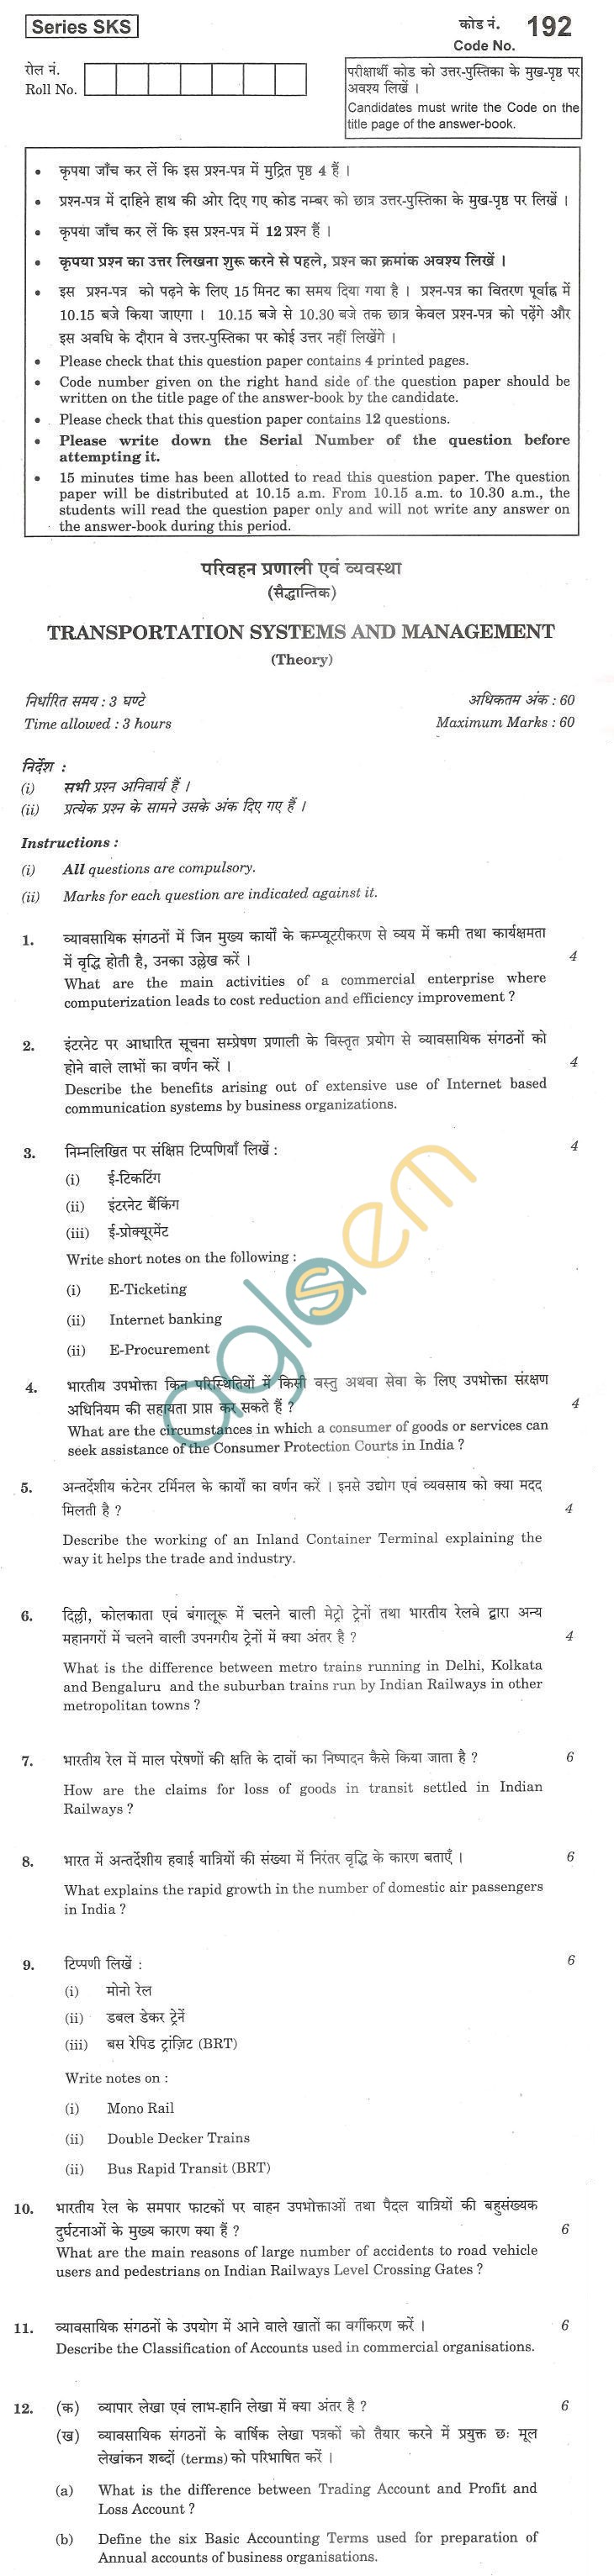 CBSE Board Exam 2013 Class XII Question Paper - Transportation Systems And Management